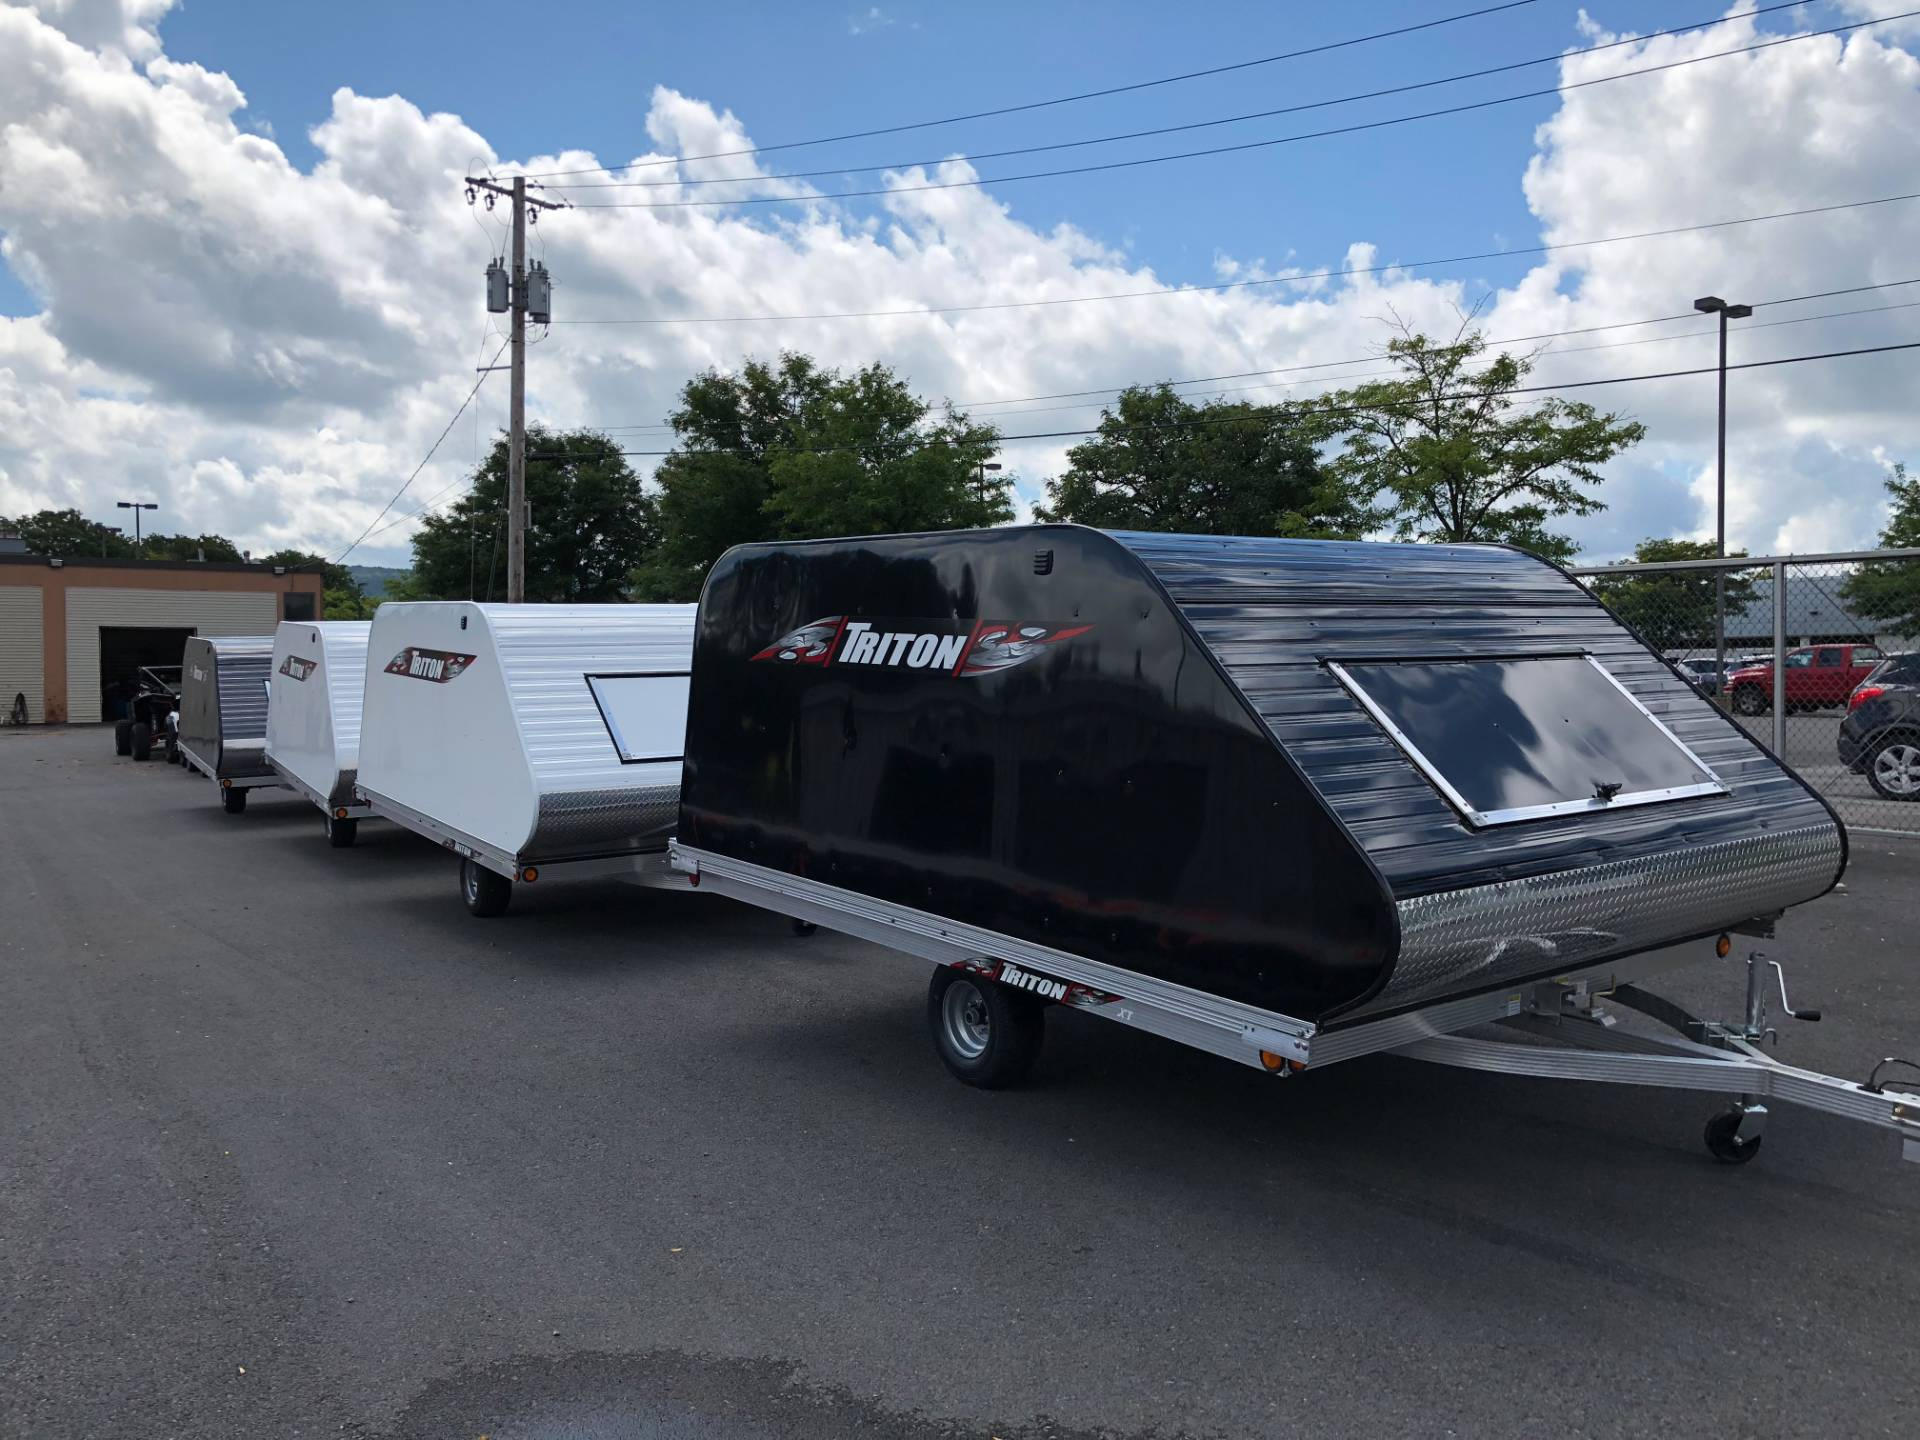 hight resolution of 2018 triton trailers xt11 101 sq in herkimer new york photo 1